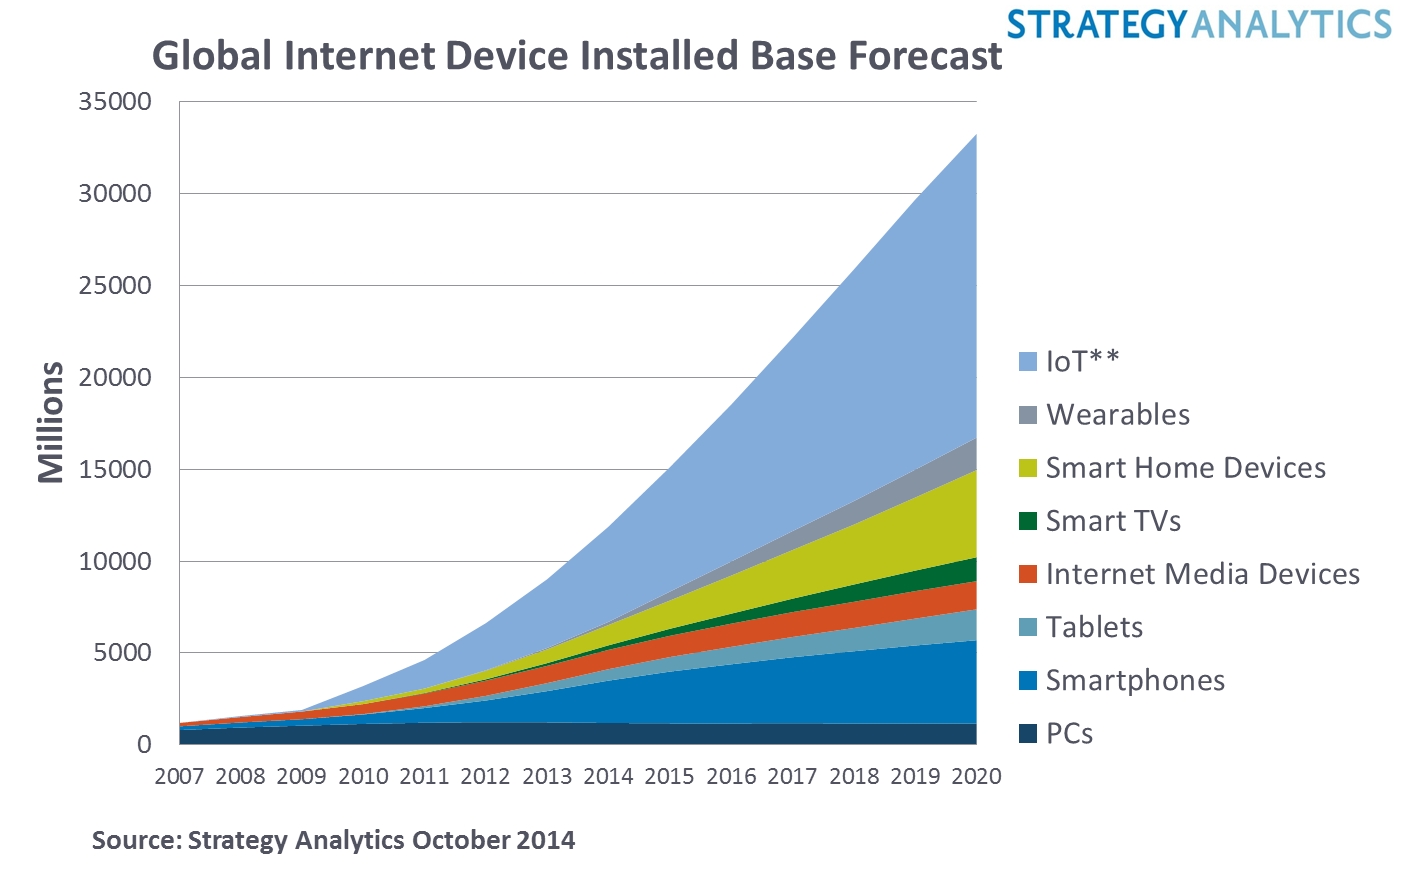 Four Connected Devices per Person Worldwide by 2020